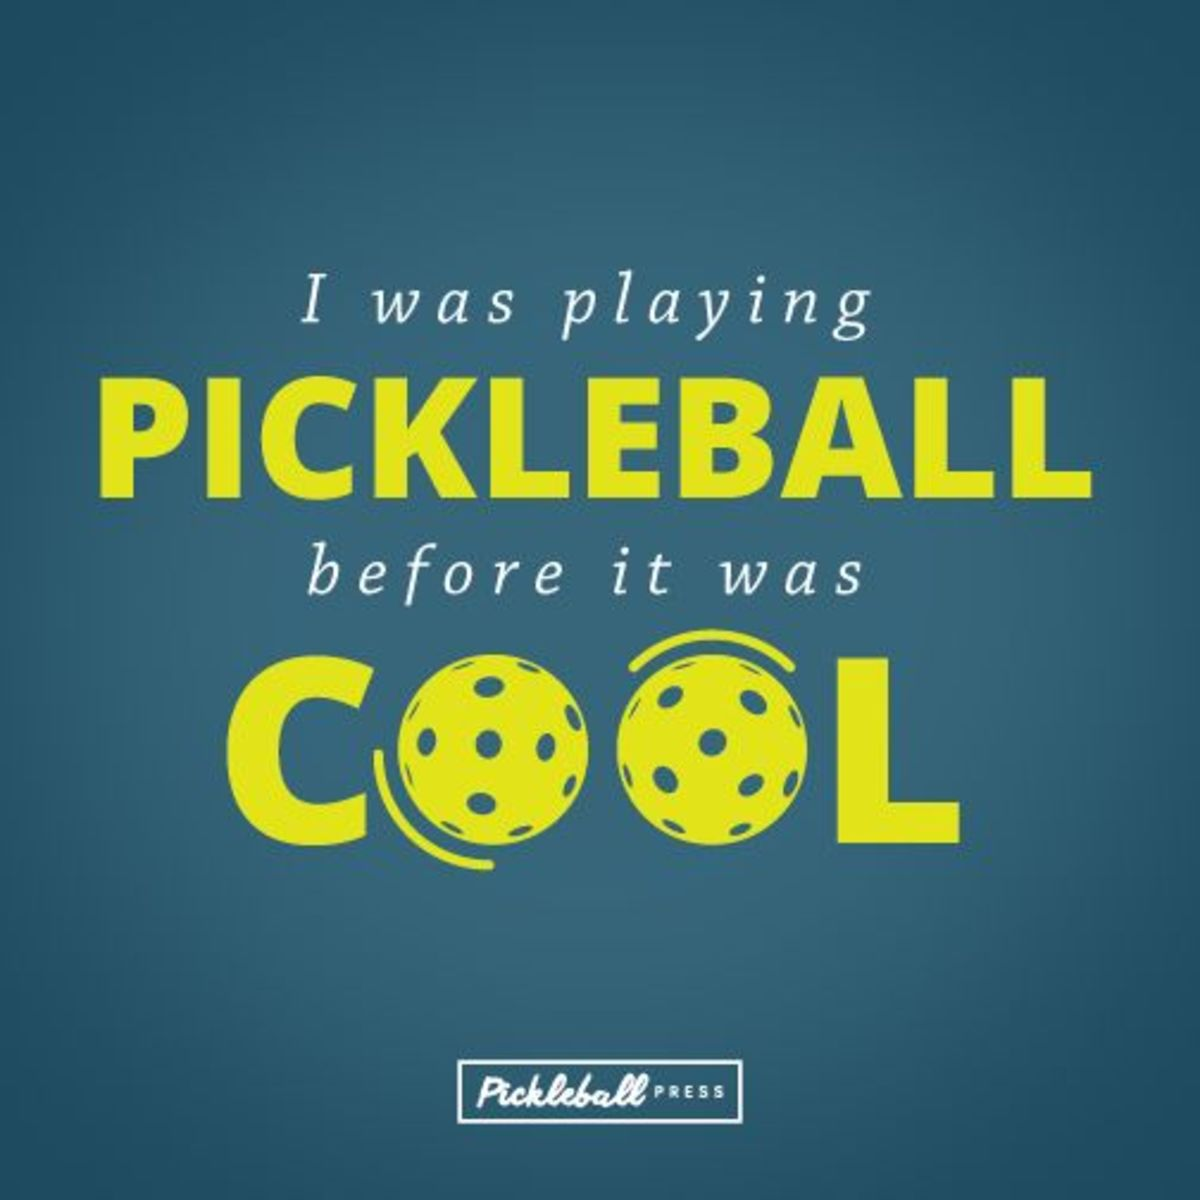 so-what-if-i-suck-at-pickleball